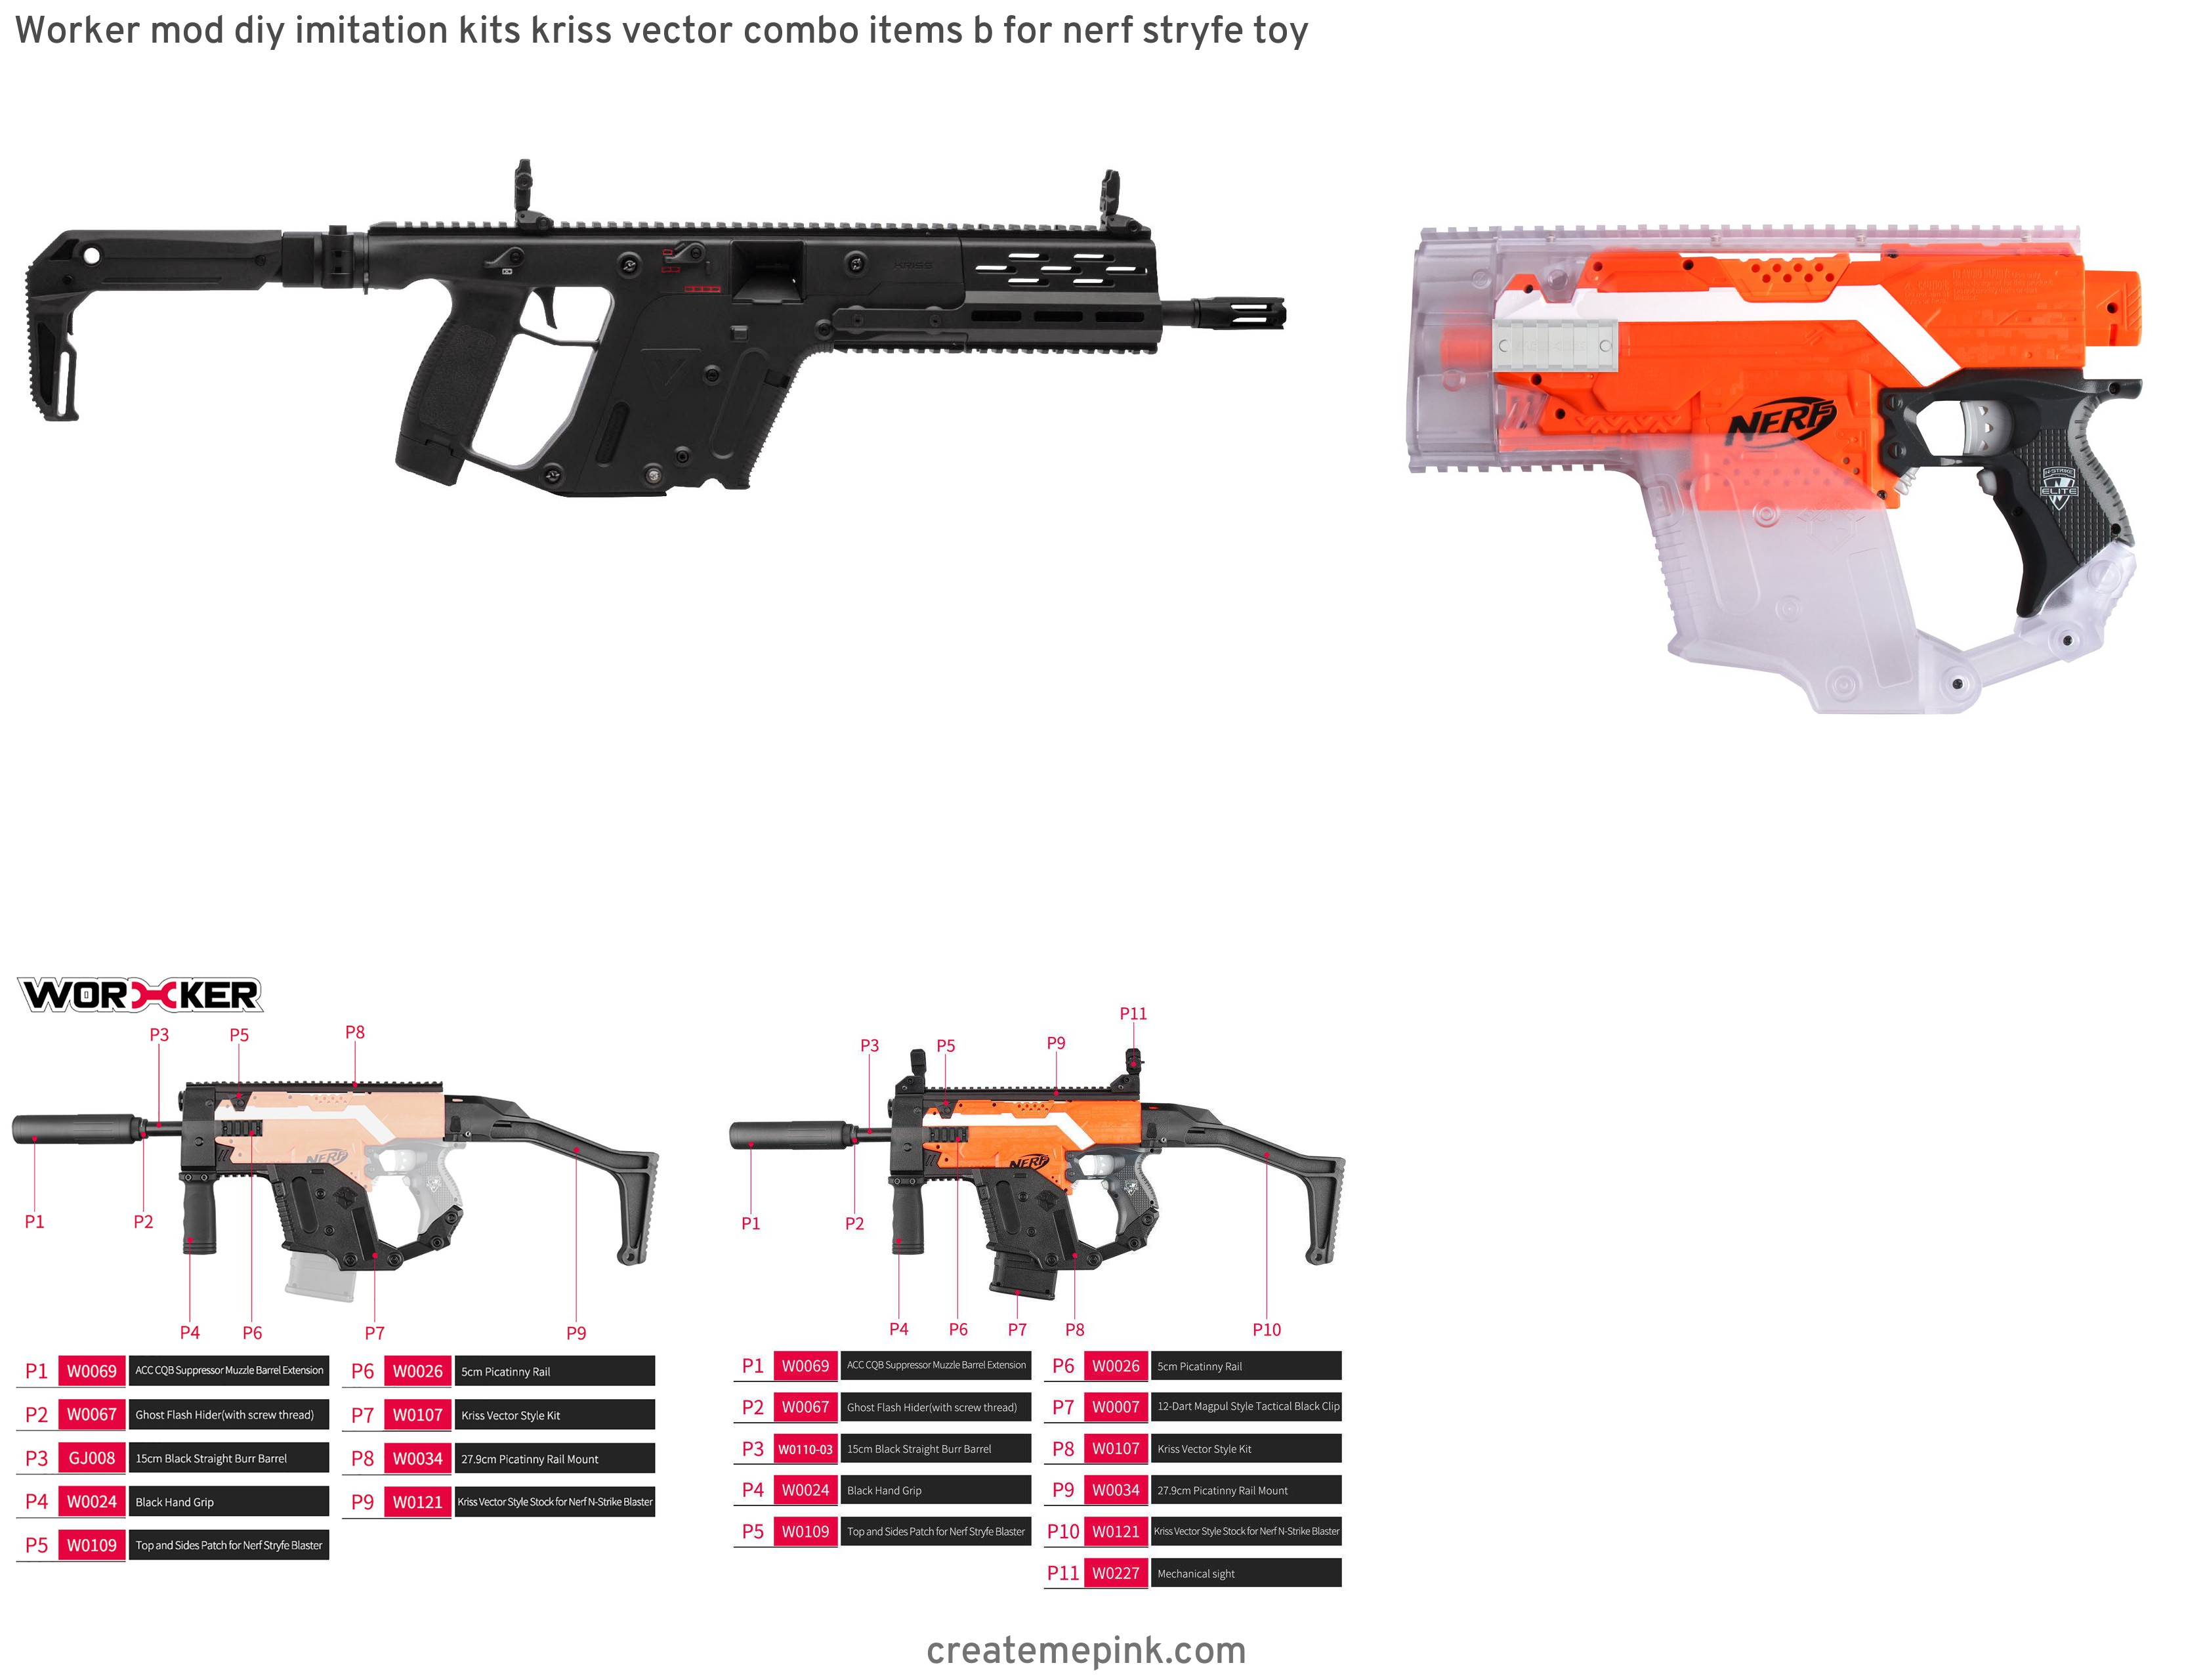 Kriss Vector Rail Extension: Worker Mod Diy Imitation Kits Kriss Vector Combo Items B For Nerf Stryfe Toy